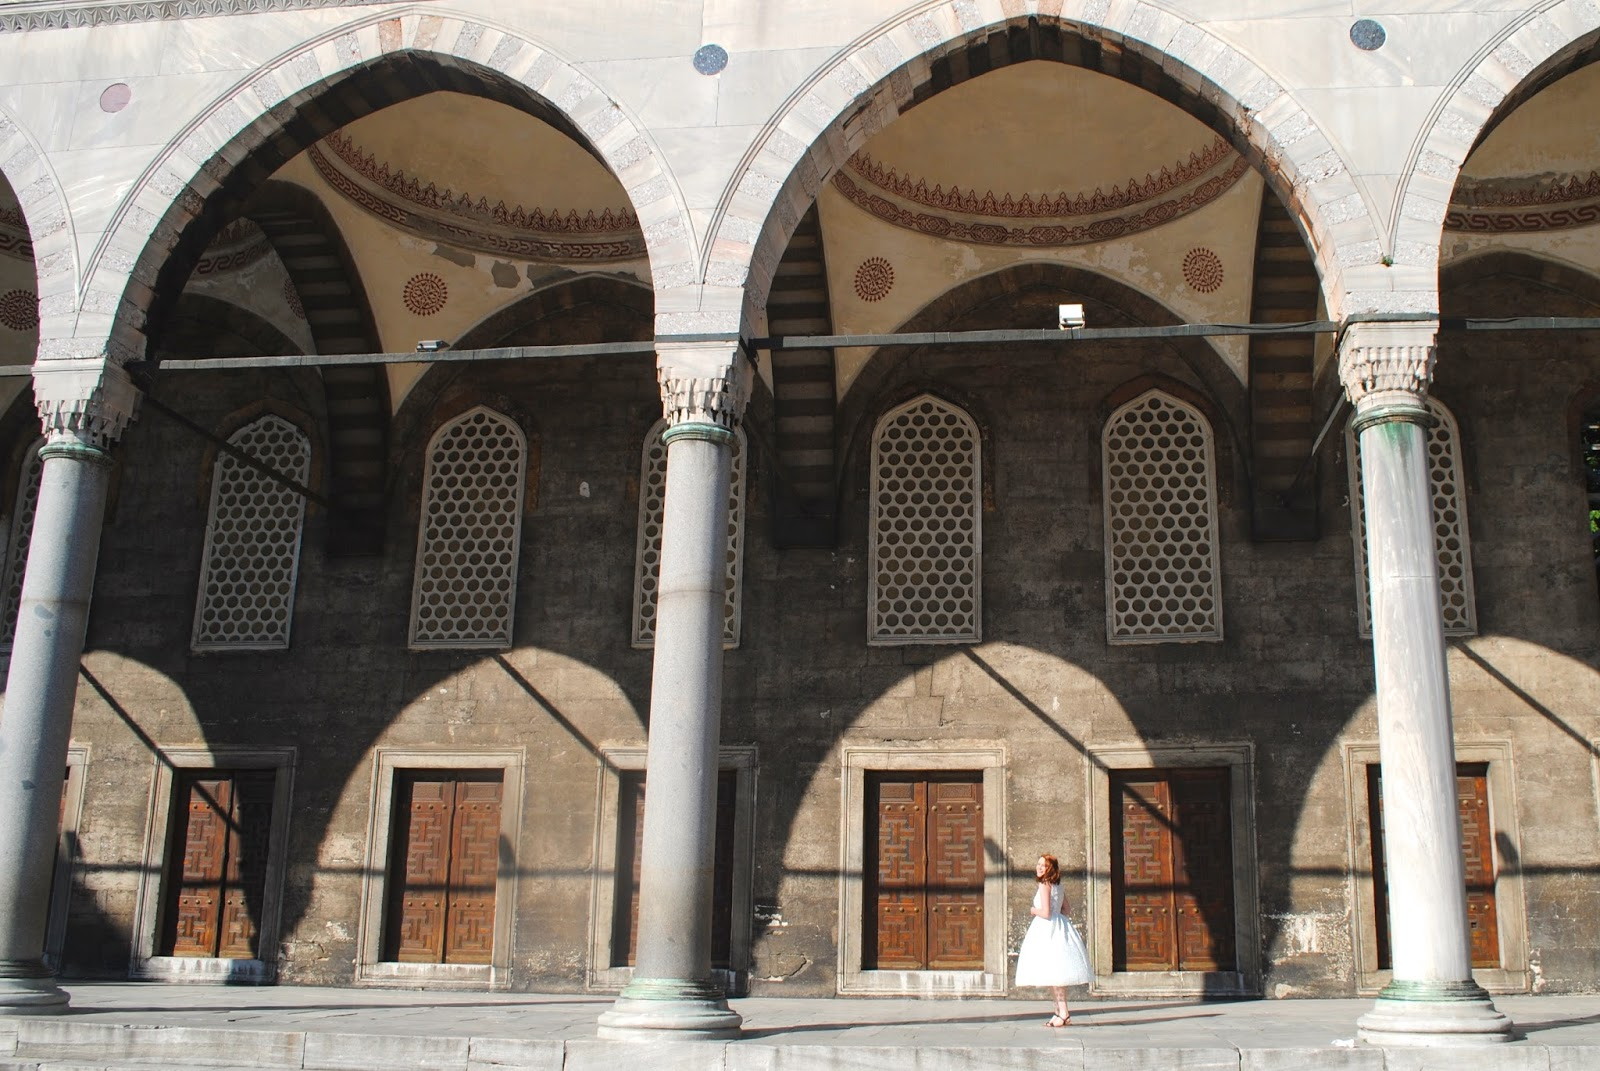 Visit the Courtyard of the Blue Mosque in Istanbul